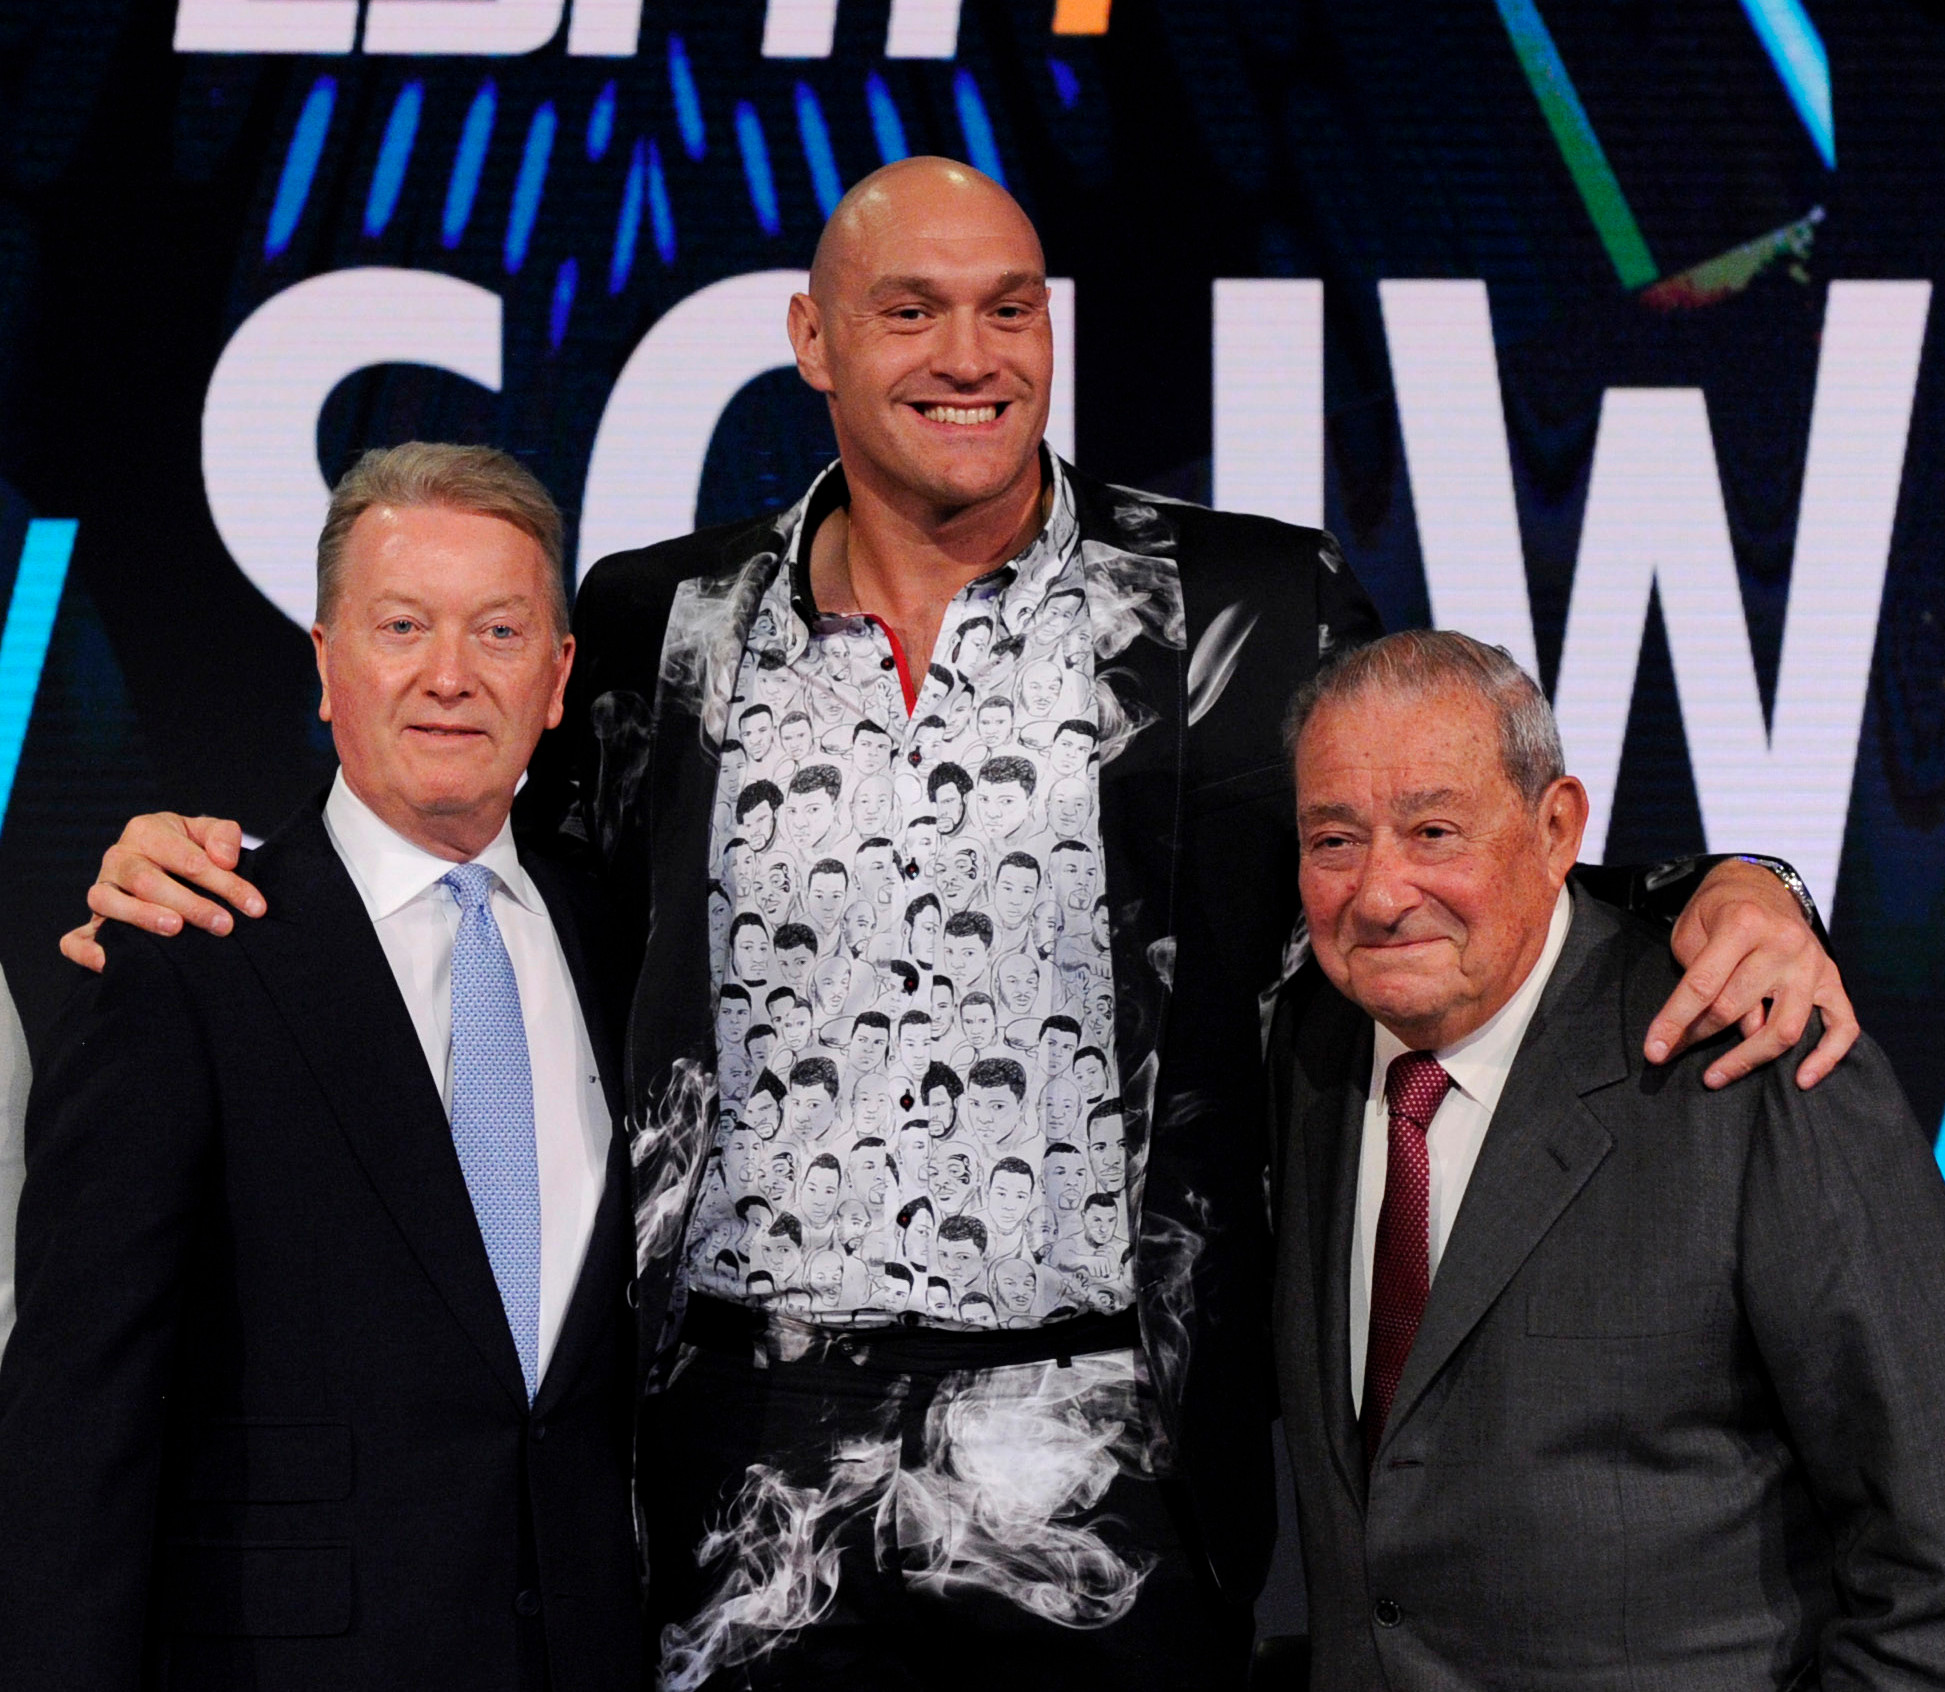 Tyson Fury is now co-promoted by Frank Warren and Bob Arum